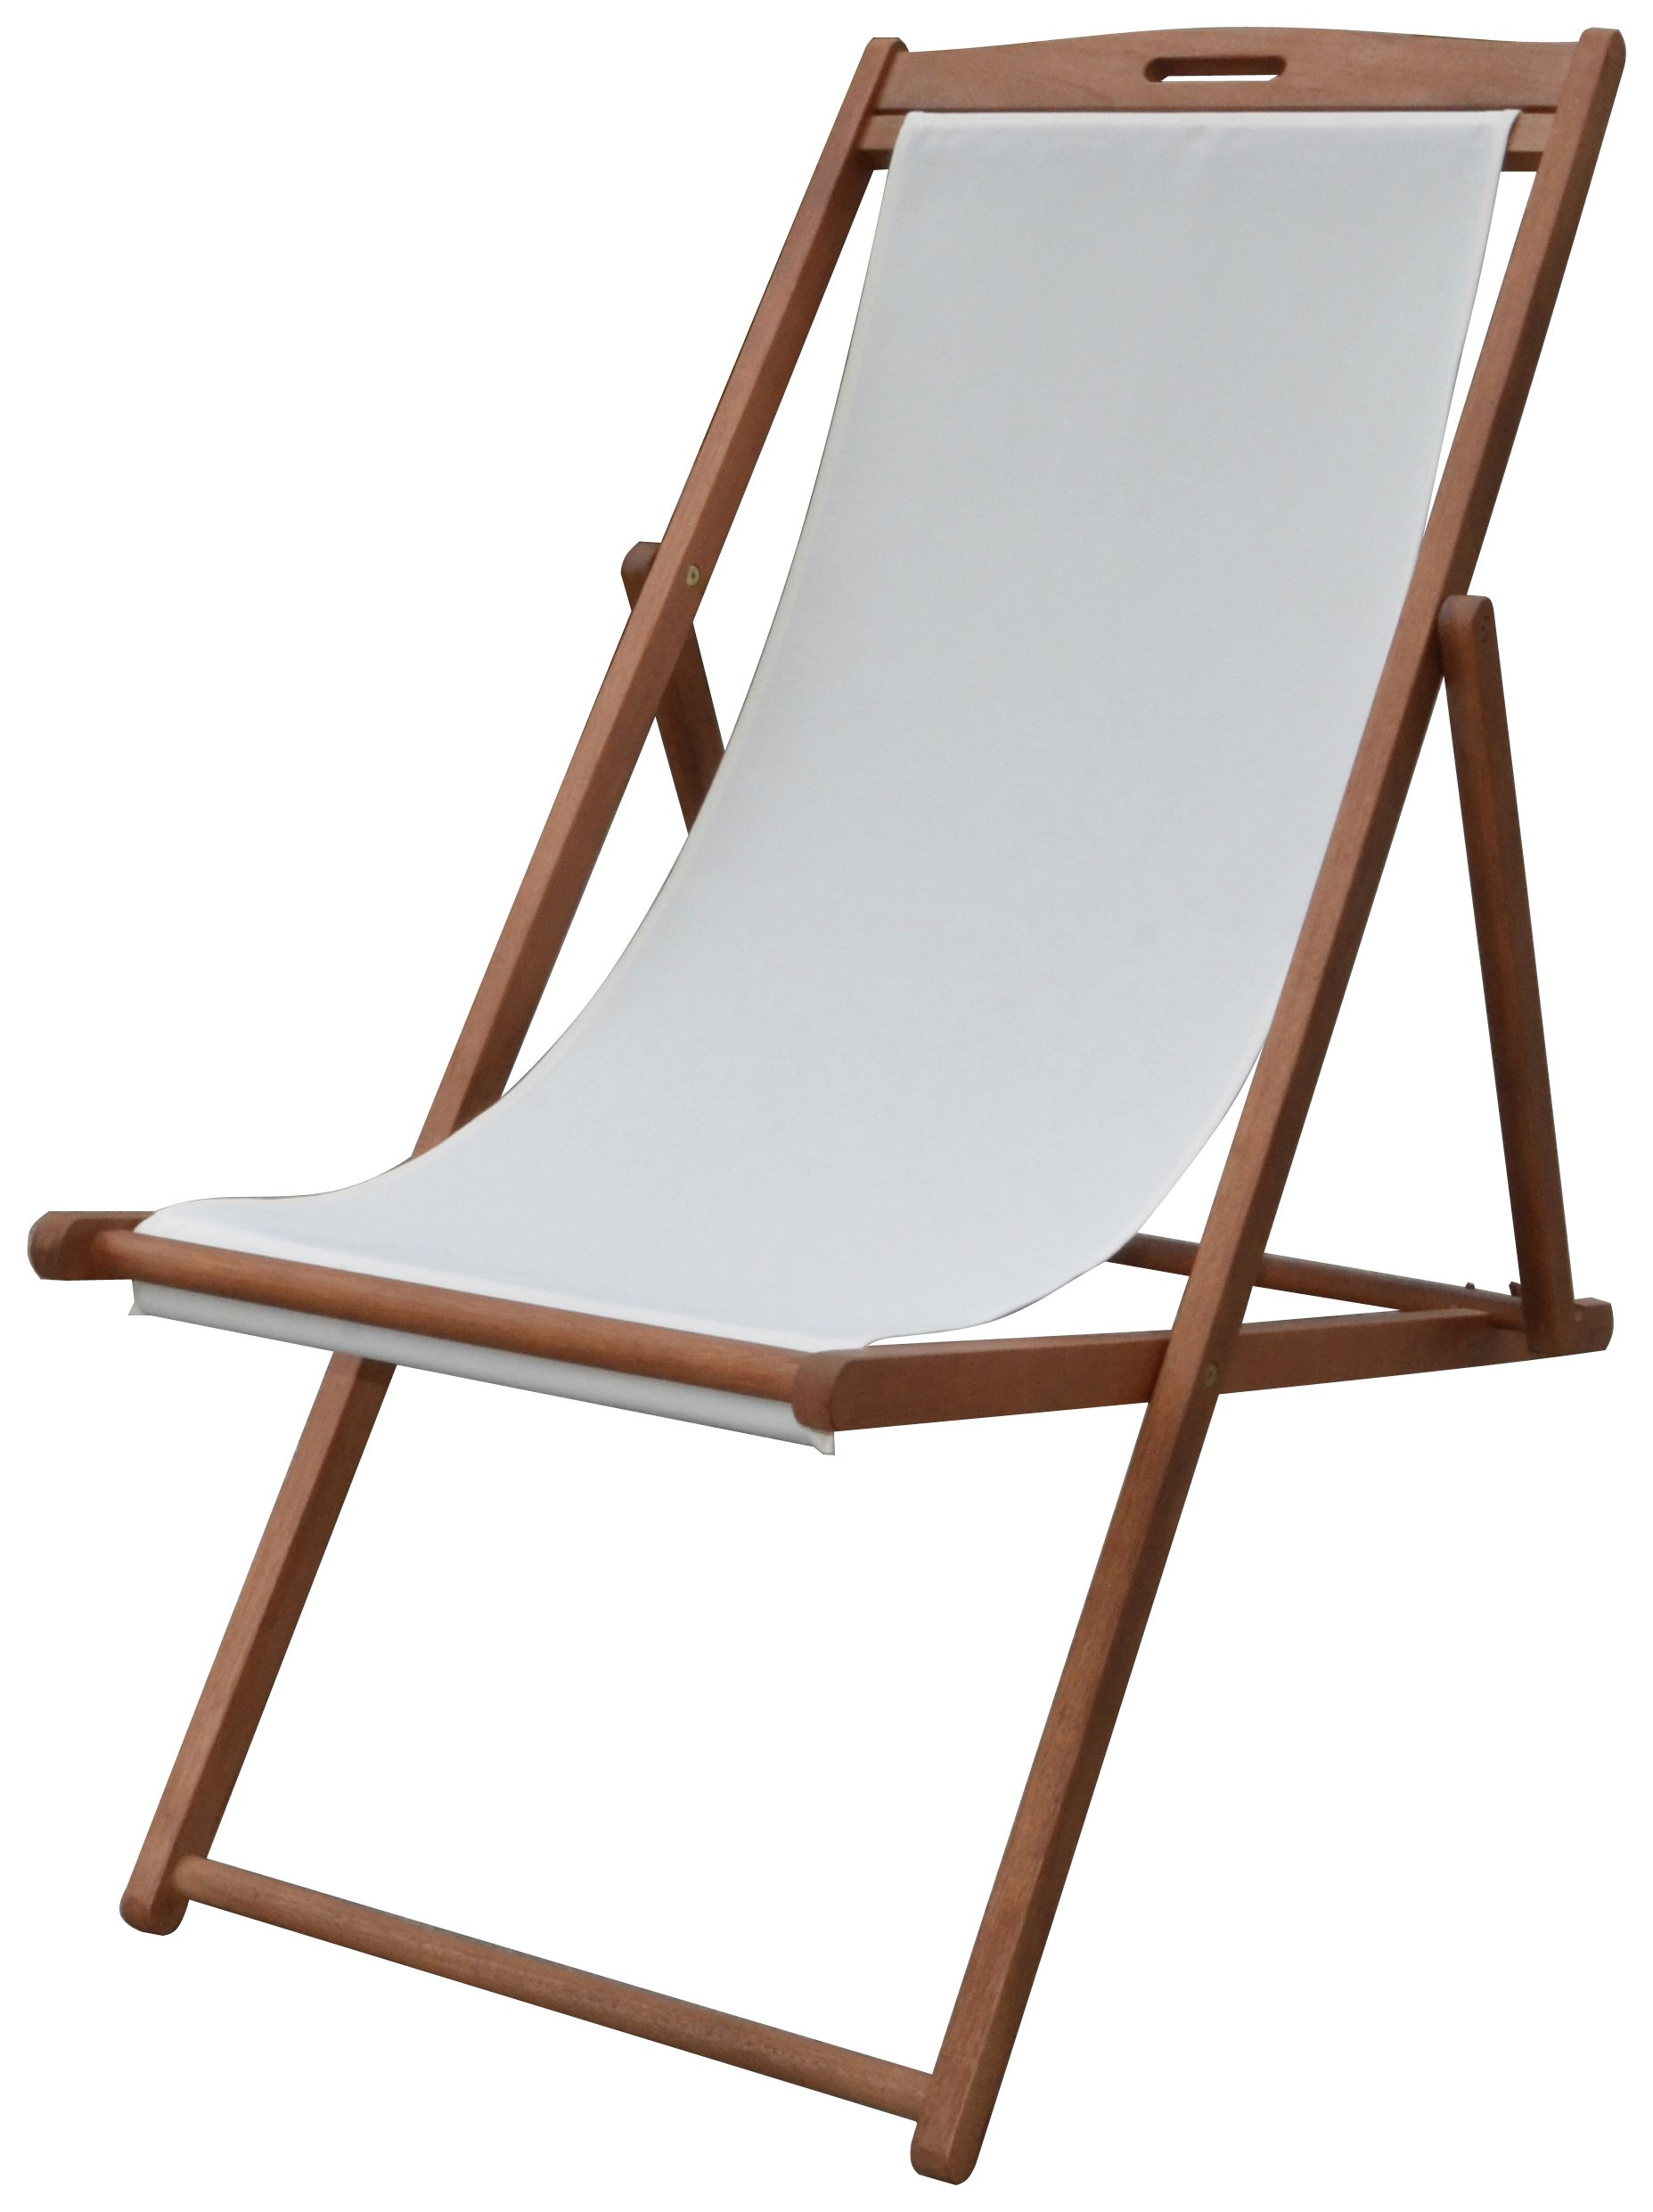 Argos Home Deck Chair - Cream